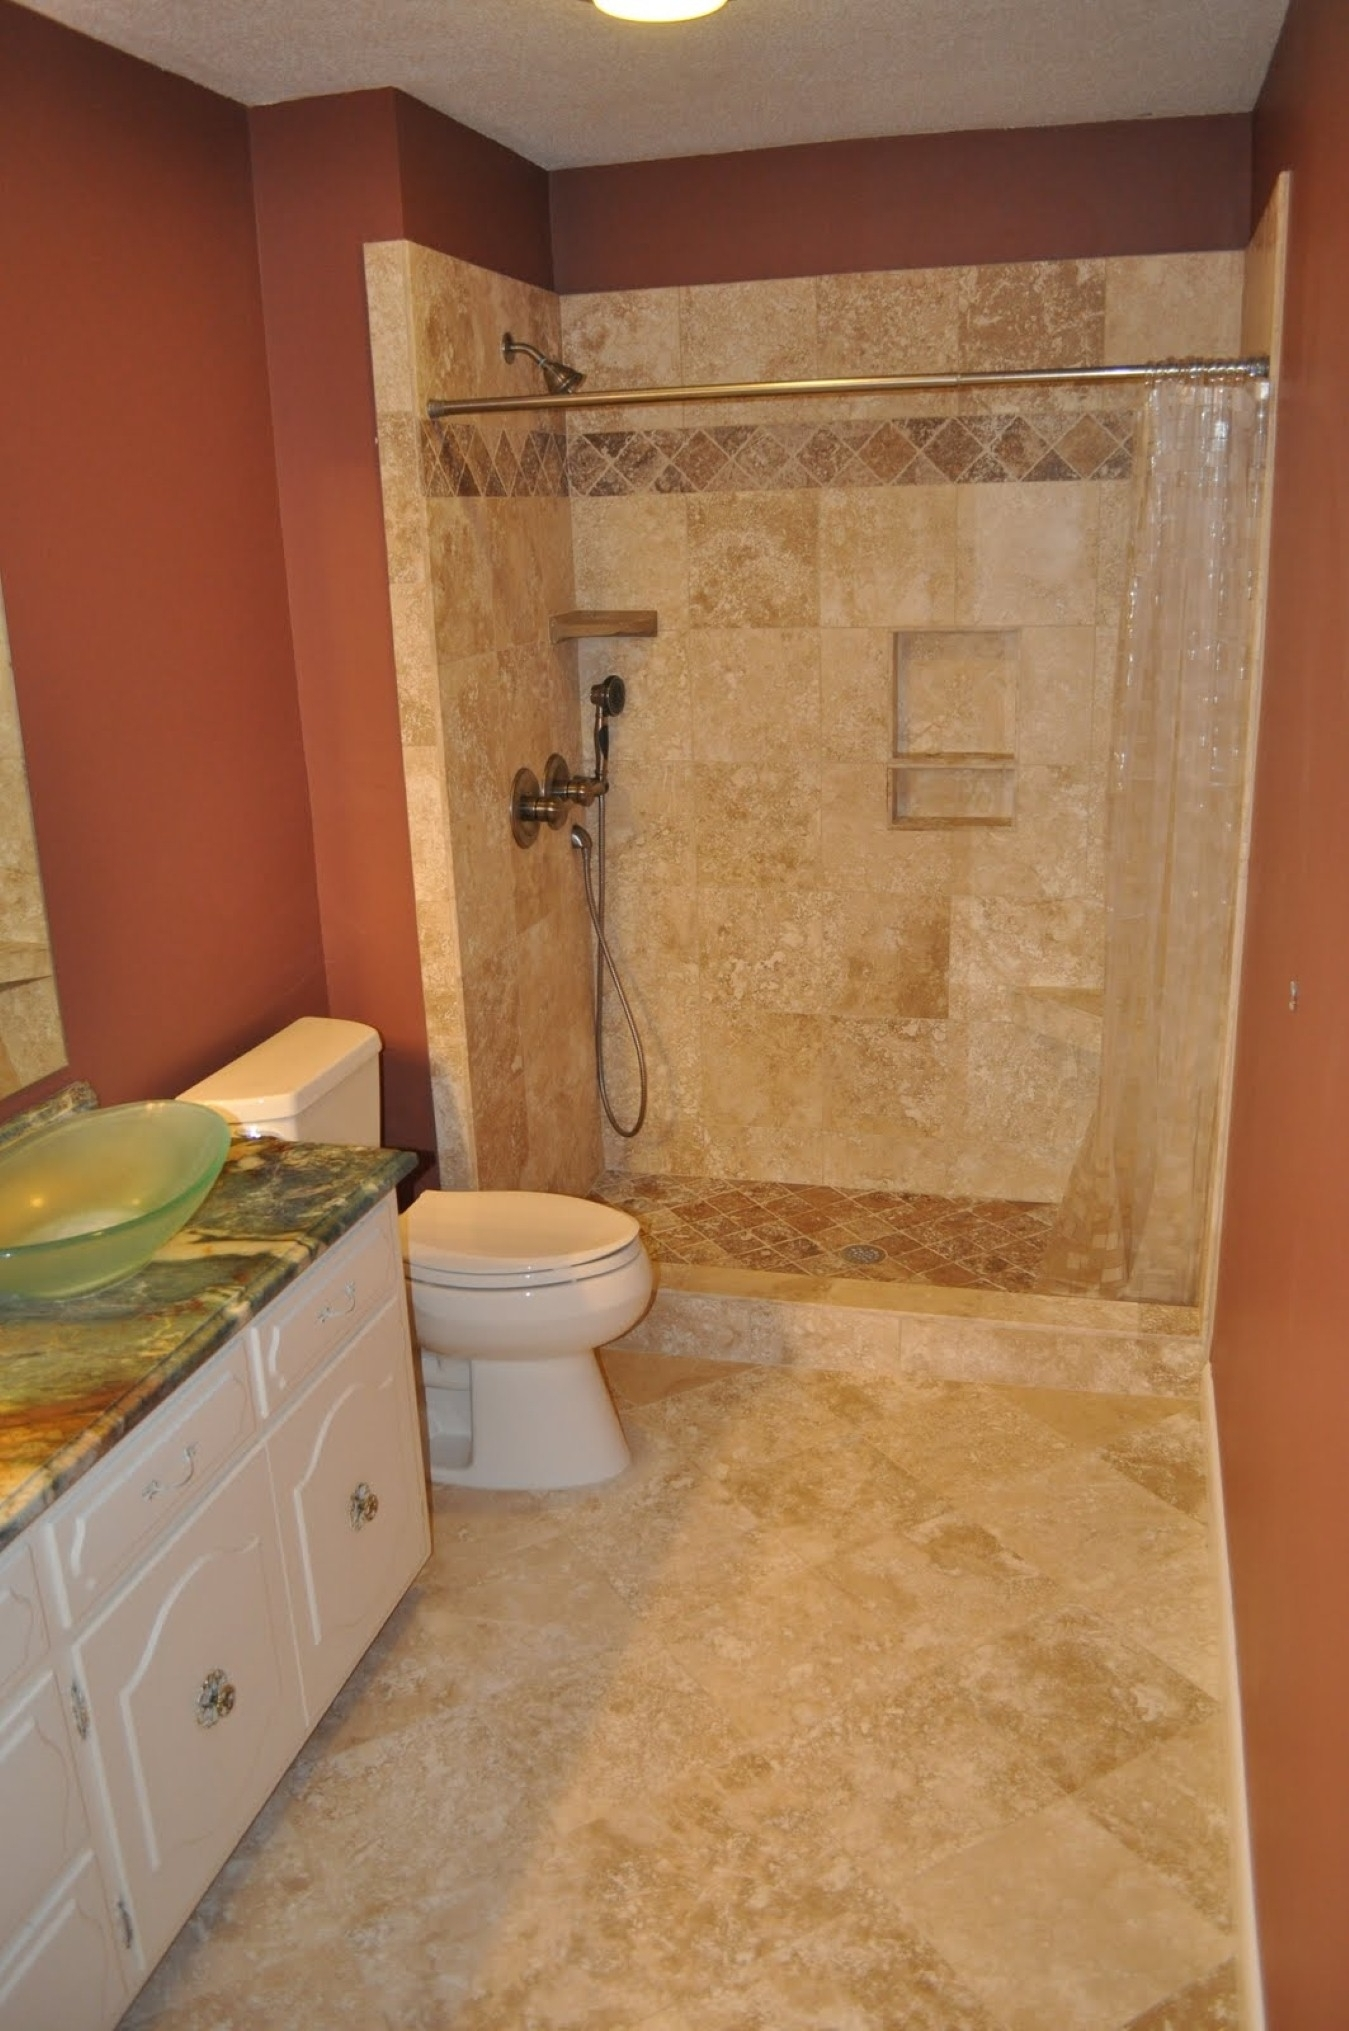 Bathroom remodel examples interior design for Bathroom remodel examples